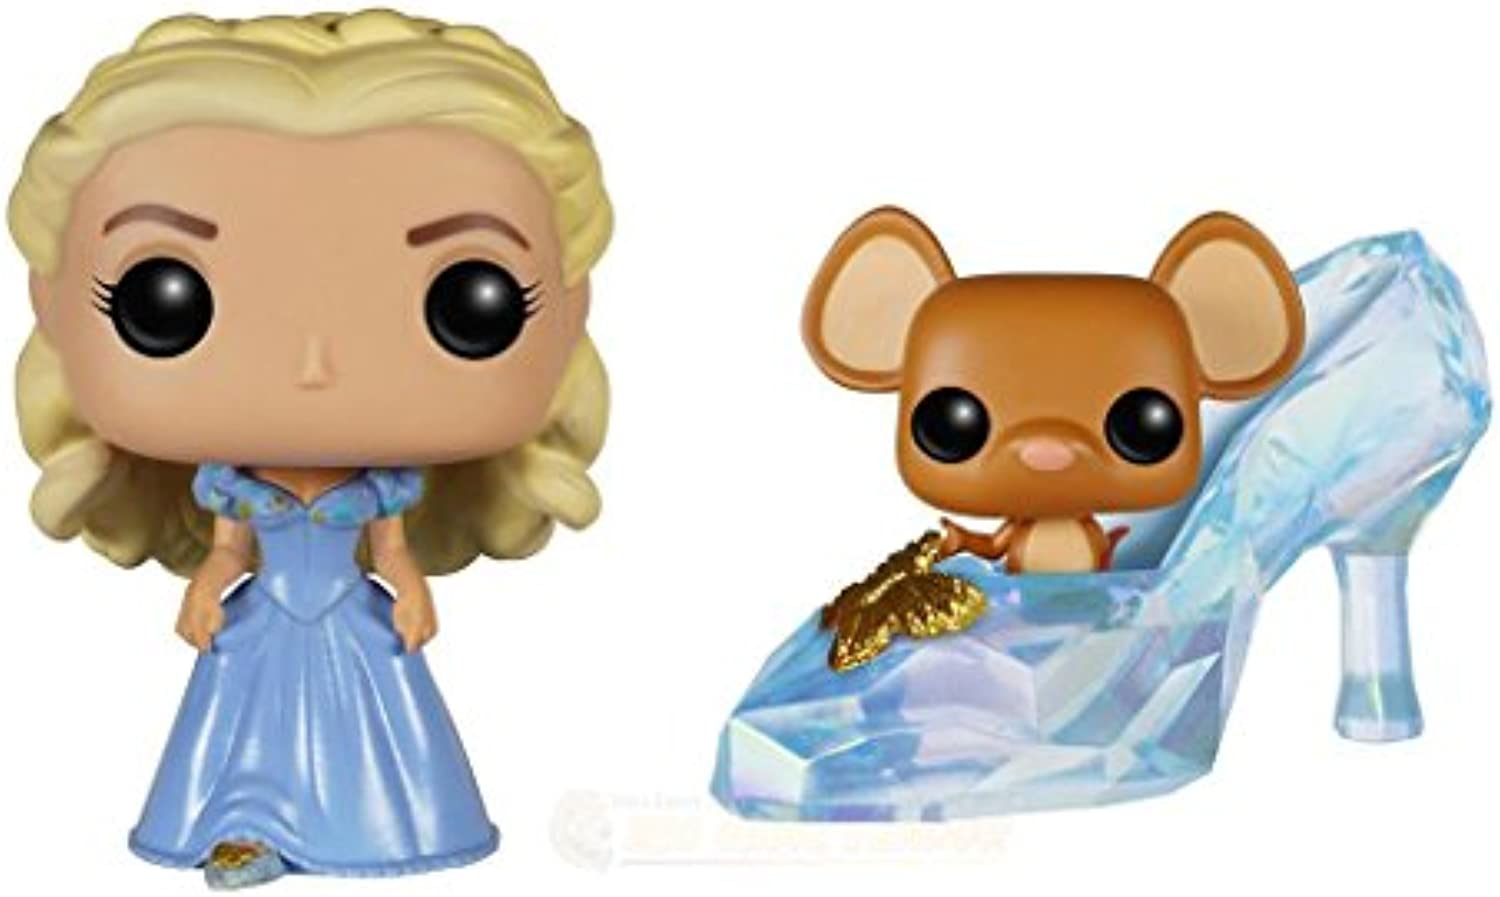 2015 Cinderella Live Action Movie Pop Figure Bundle with Gus Gus and Cinderella by Funko POP